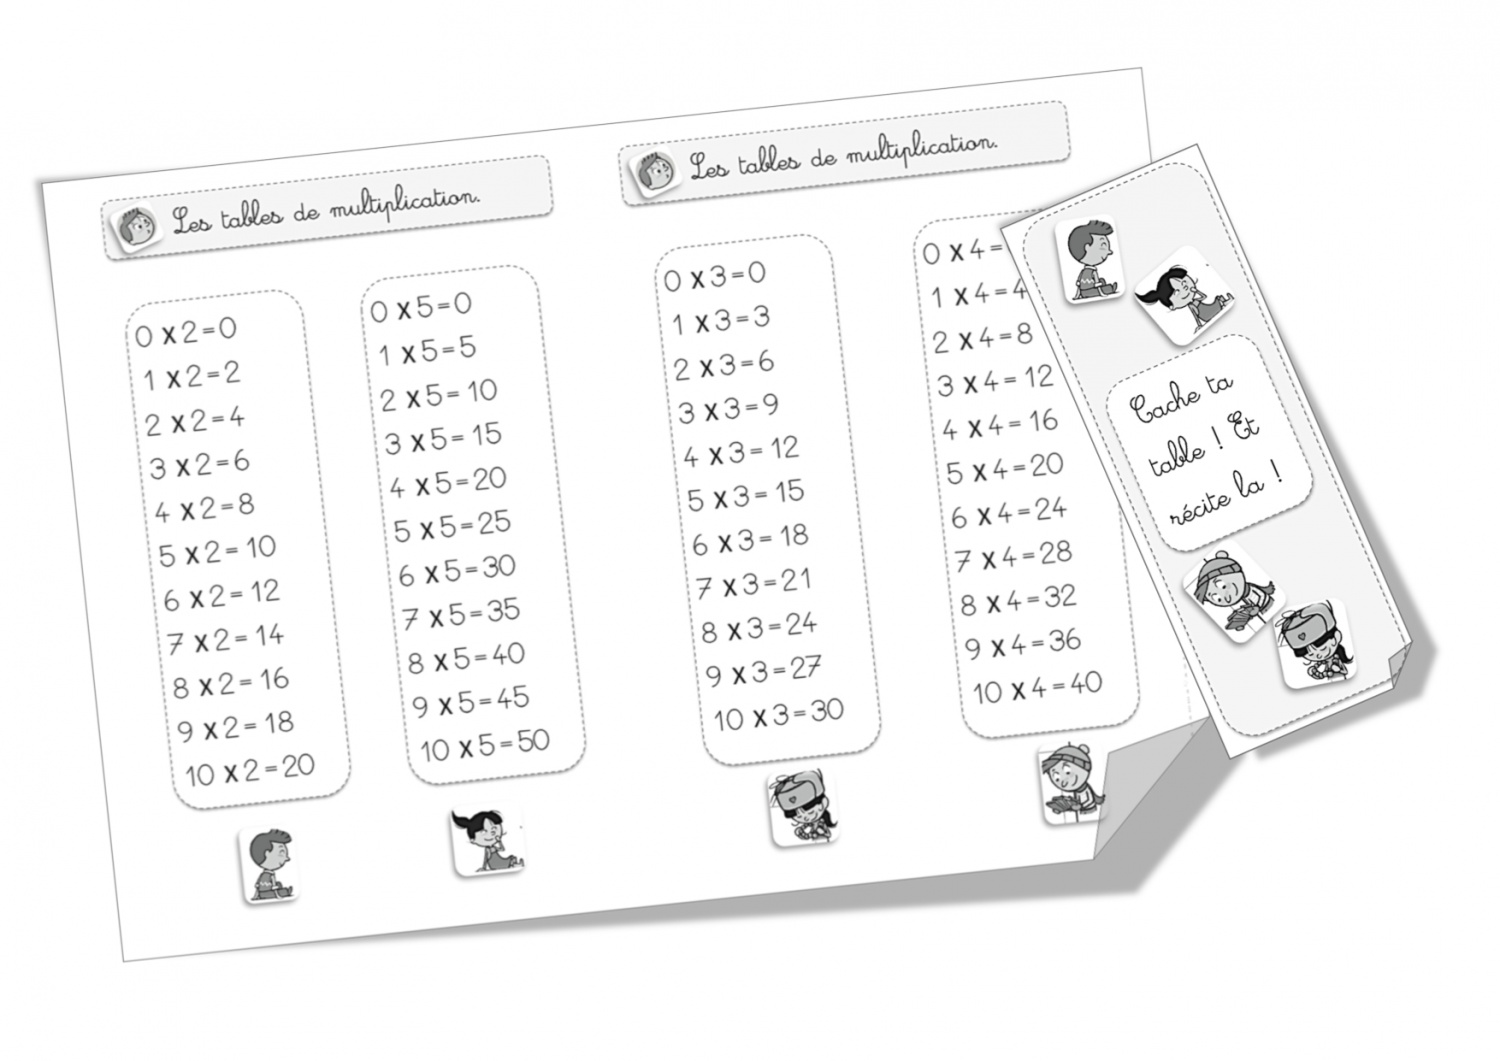 Tables de multiplication ce1 bout de gomme - Table de multiplication exercice ce1 ...